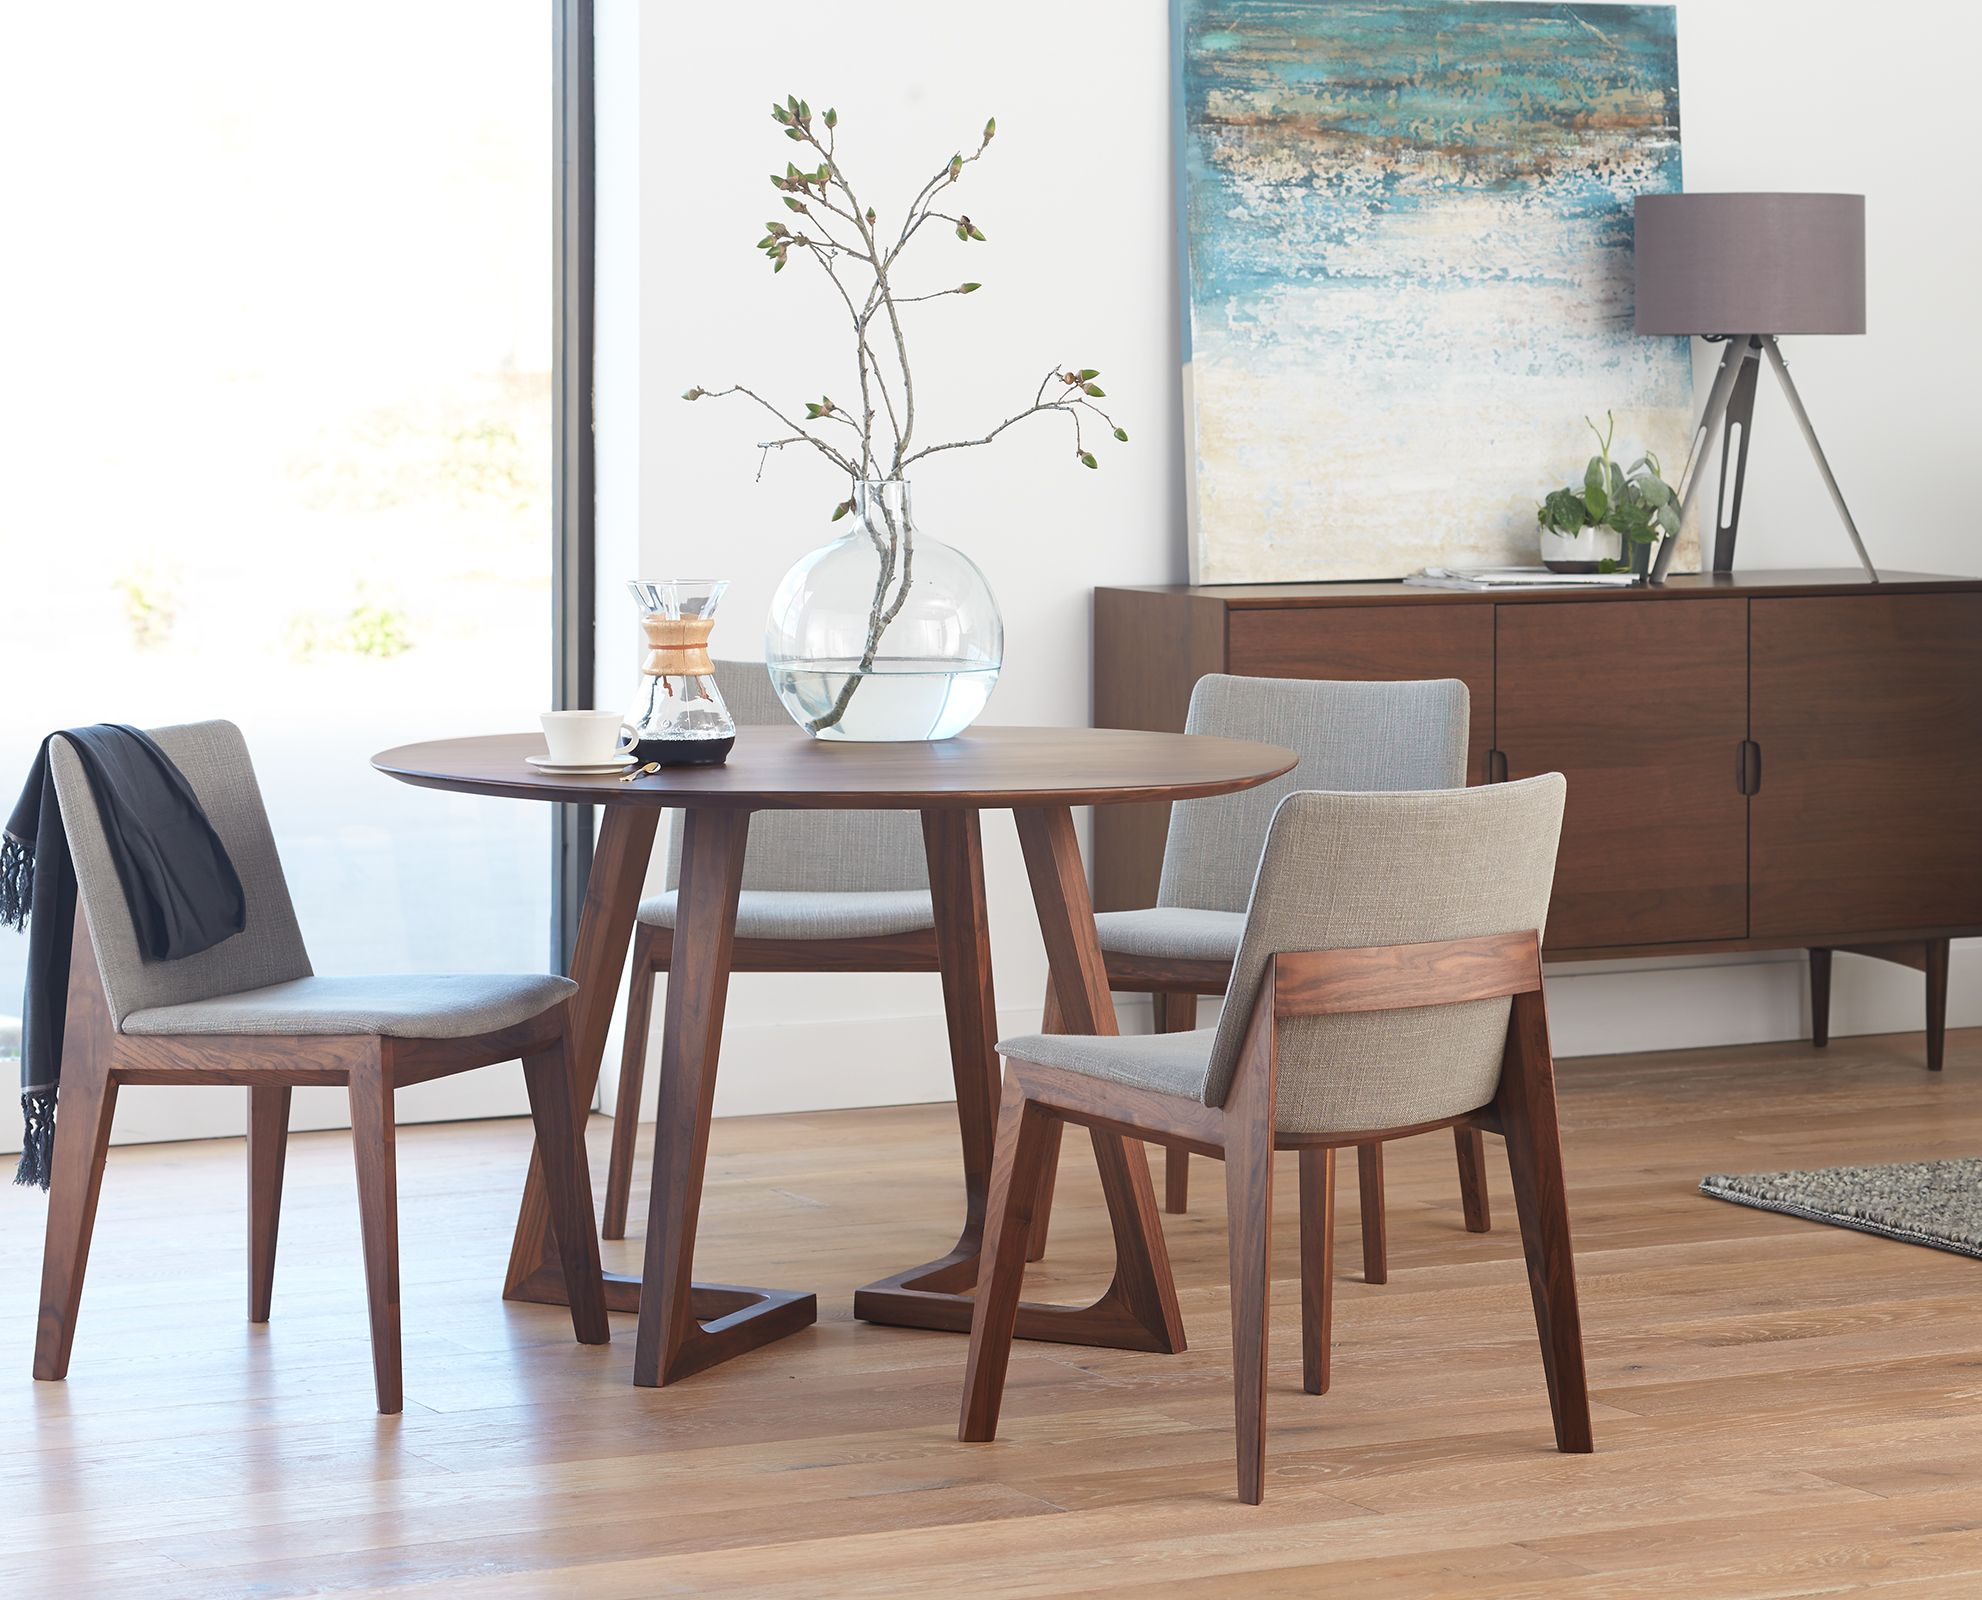 round table and chairs Round table and chairs from Dania | Condo | Pinterest | Dining  round table and chairs